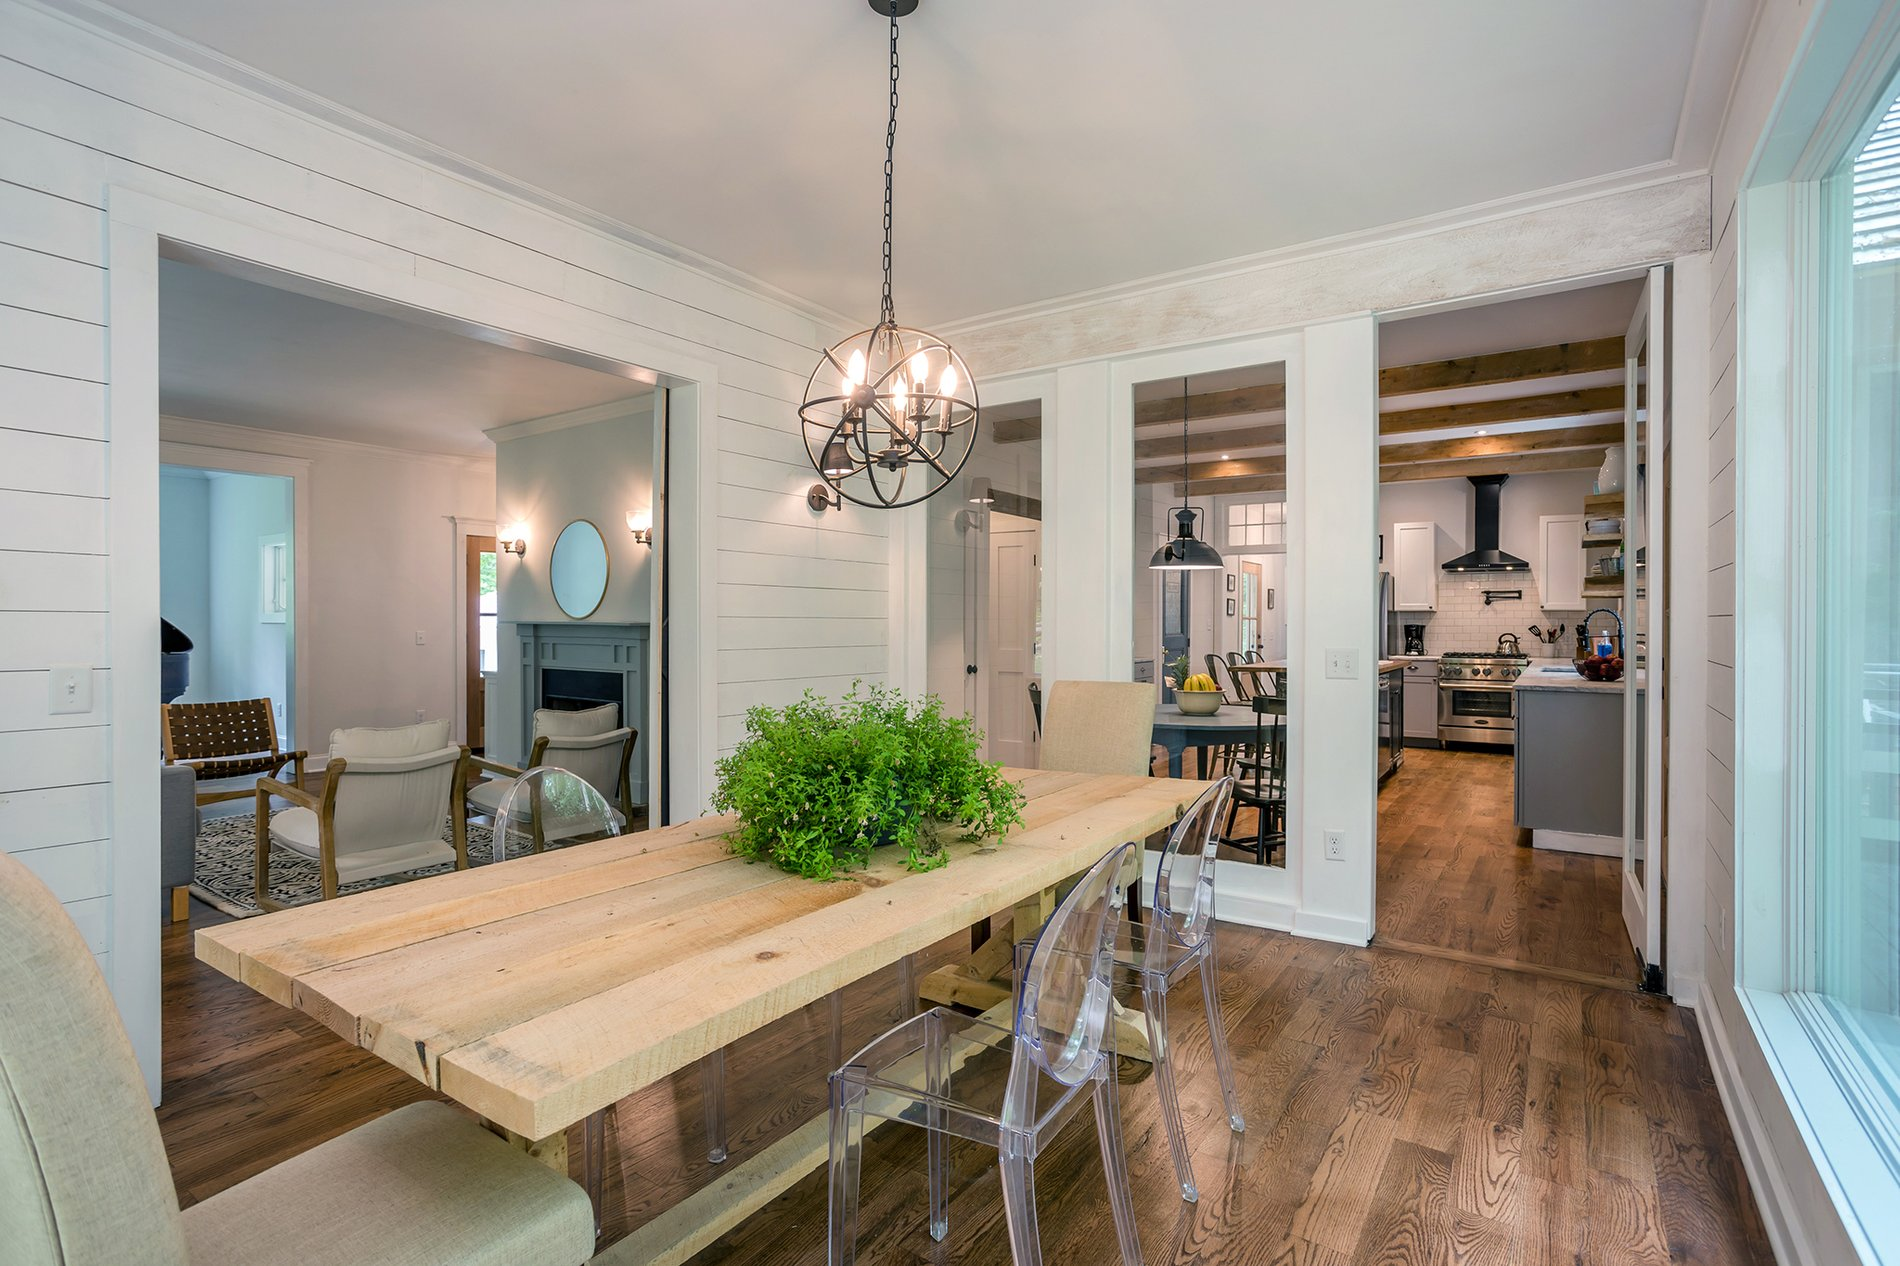 Country dining room with whitewashed wood beams.